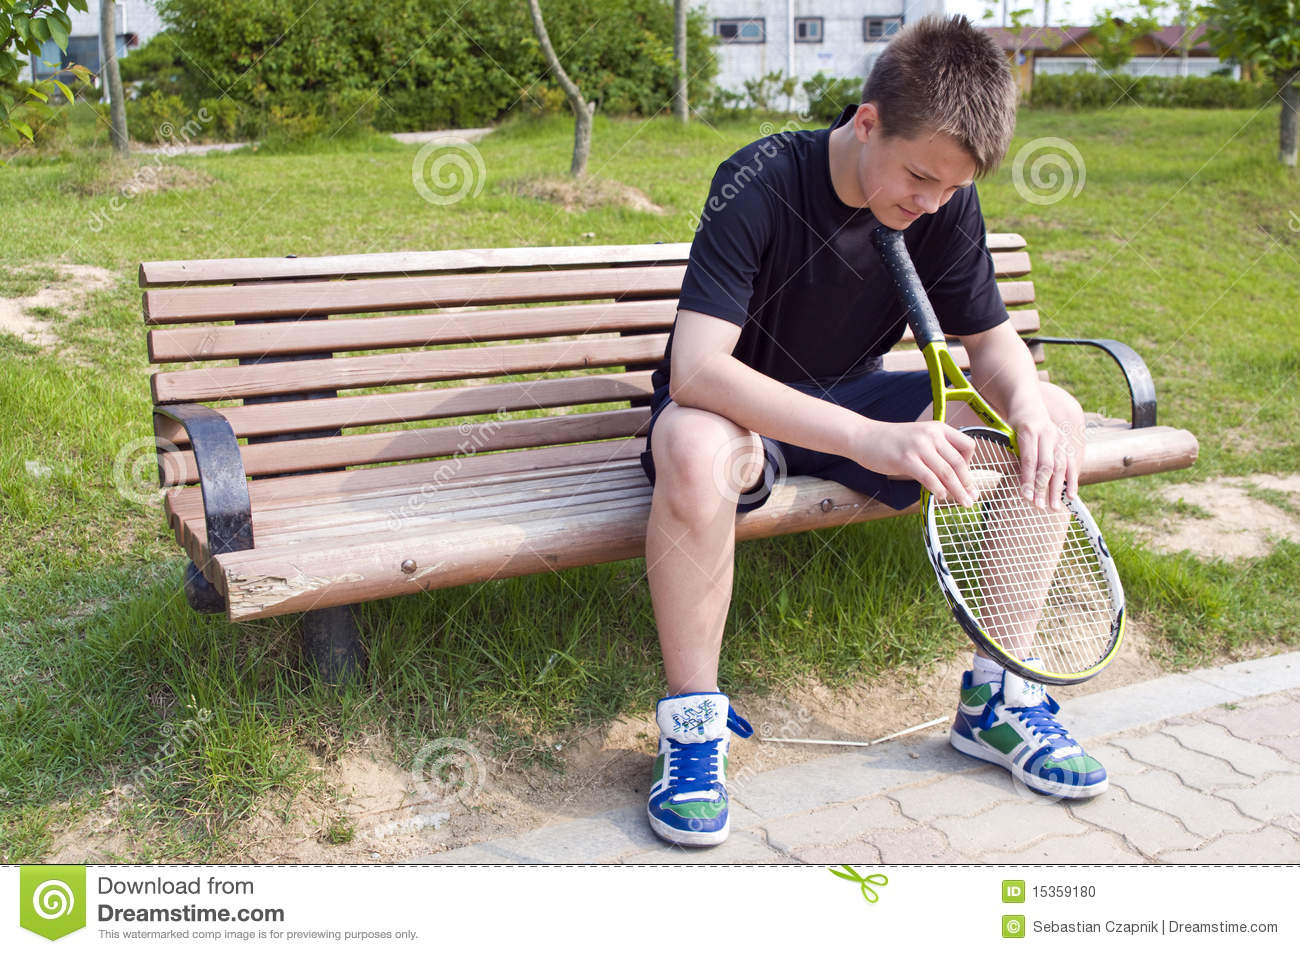 Teen Tennis Player Stock Photo - Image: 15359180